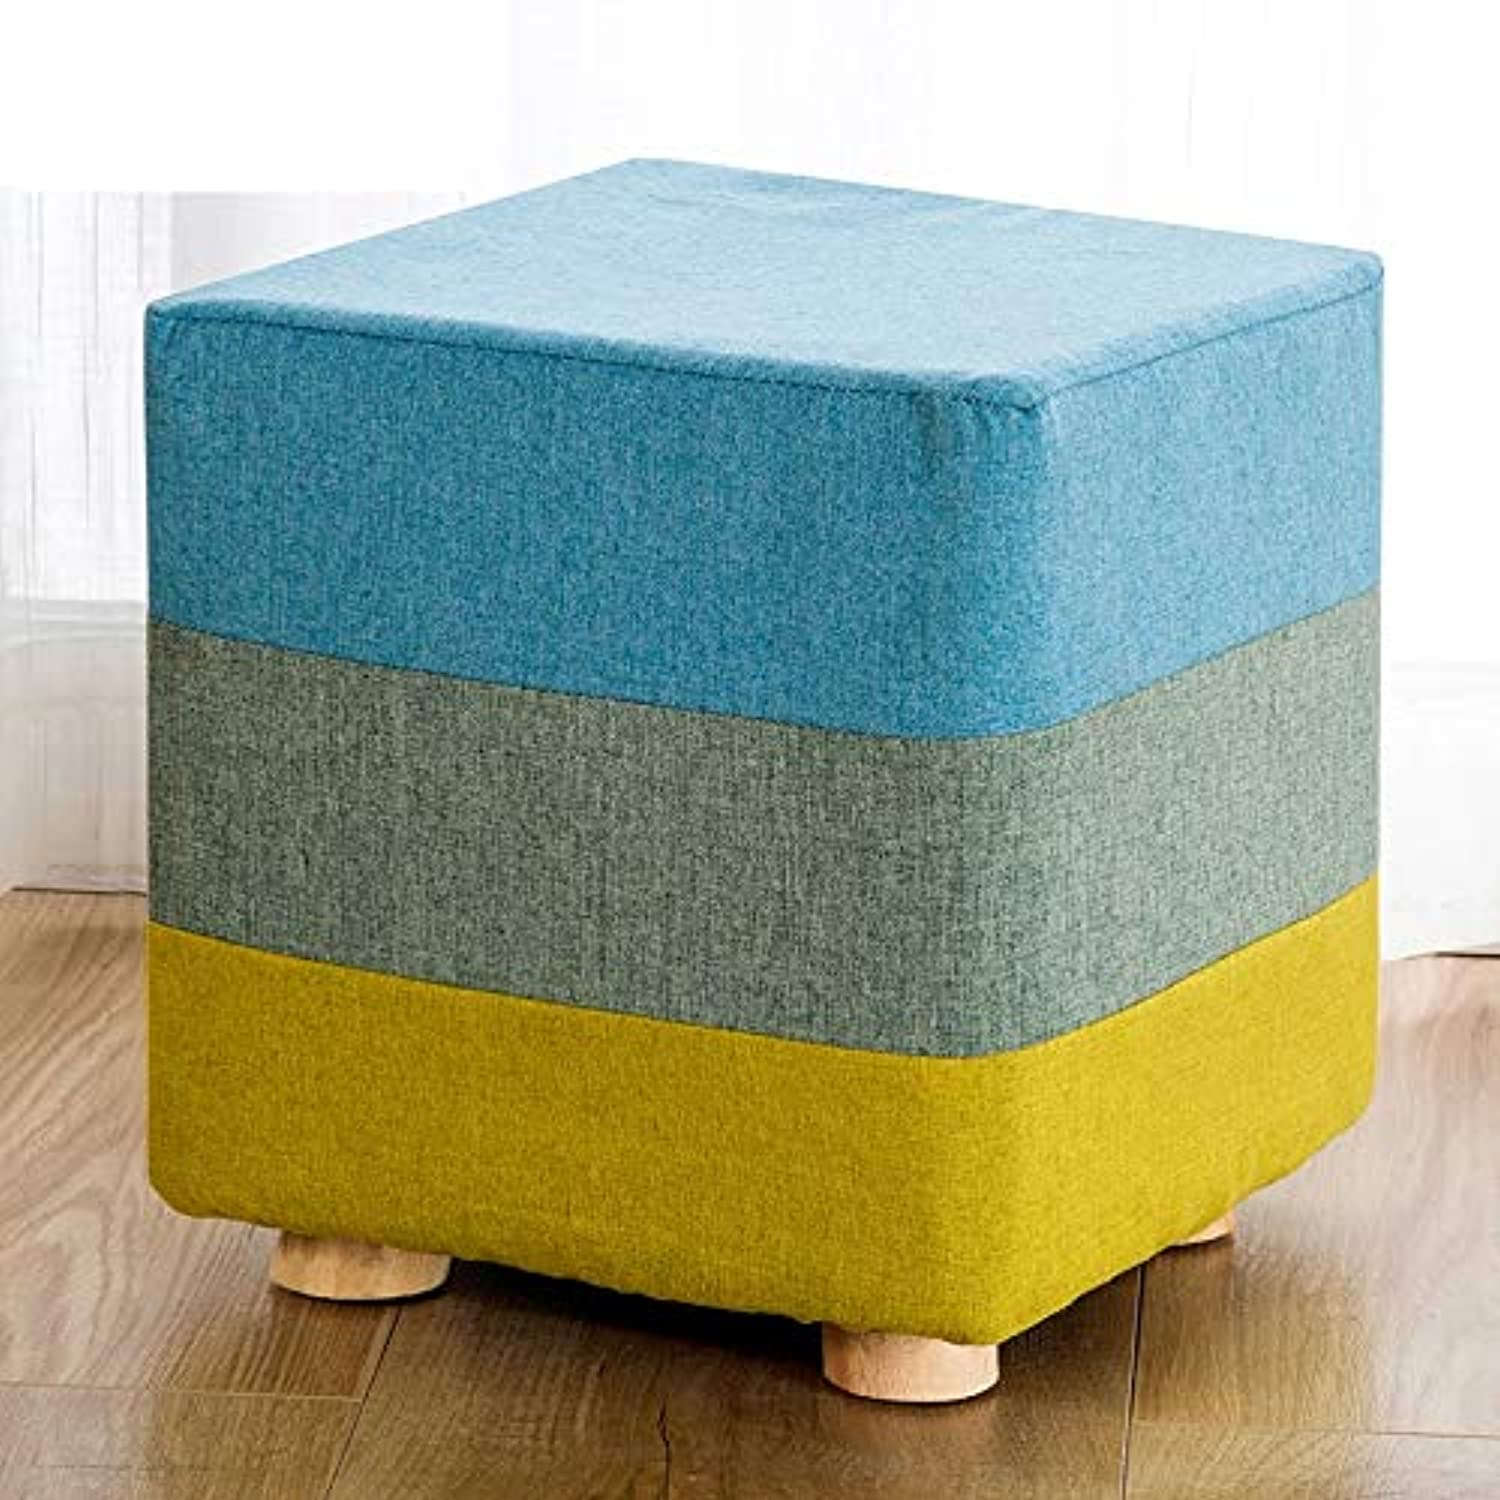 SYFO Simple shoes Bench, Home Fabric Bench, Fashion Sofa Bench, Bed End Stool, Creative Small Bench Stool (Size   Rectangle)